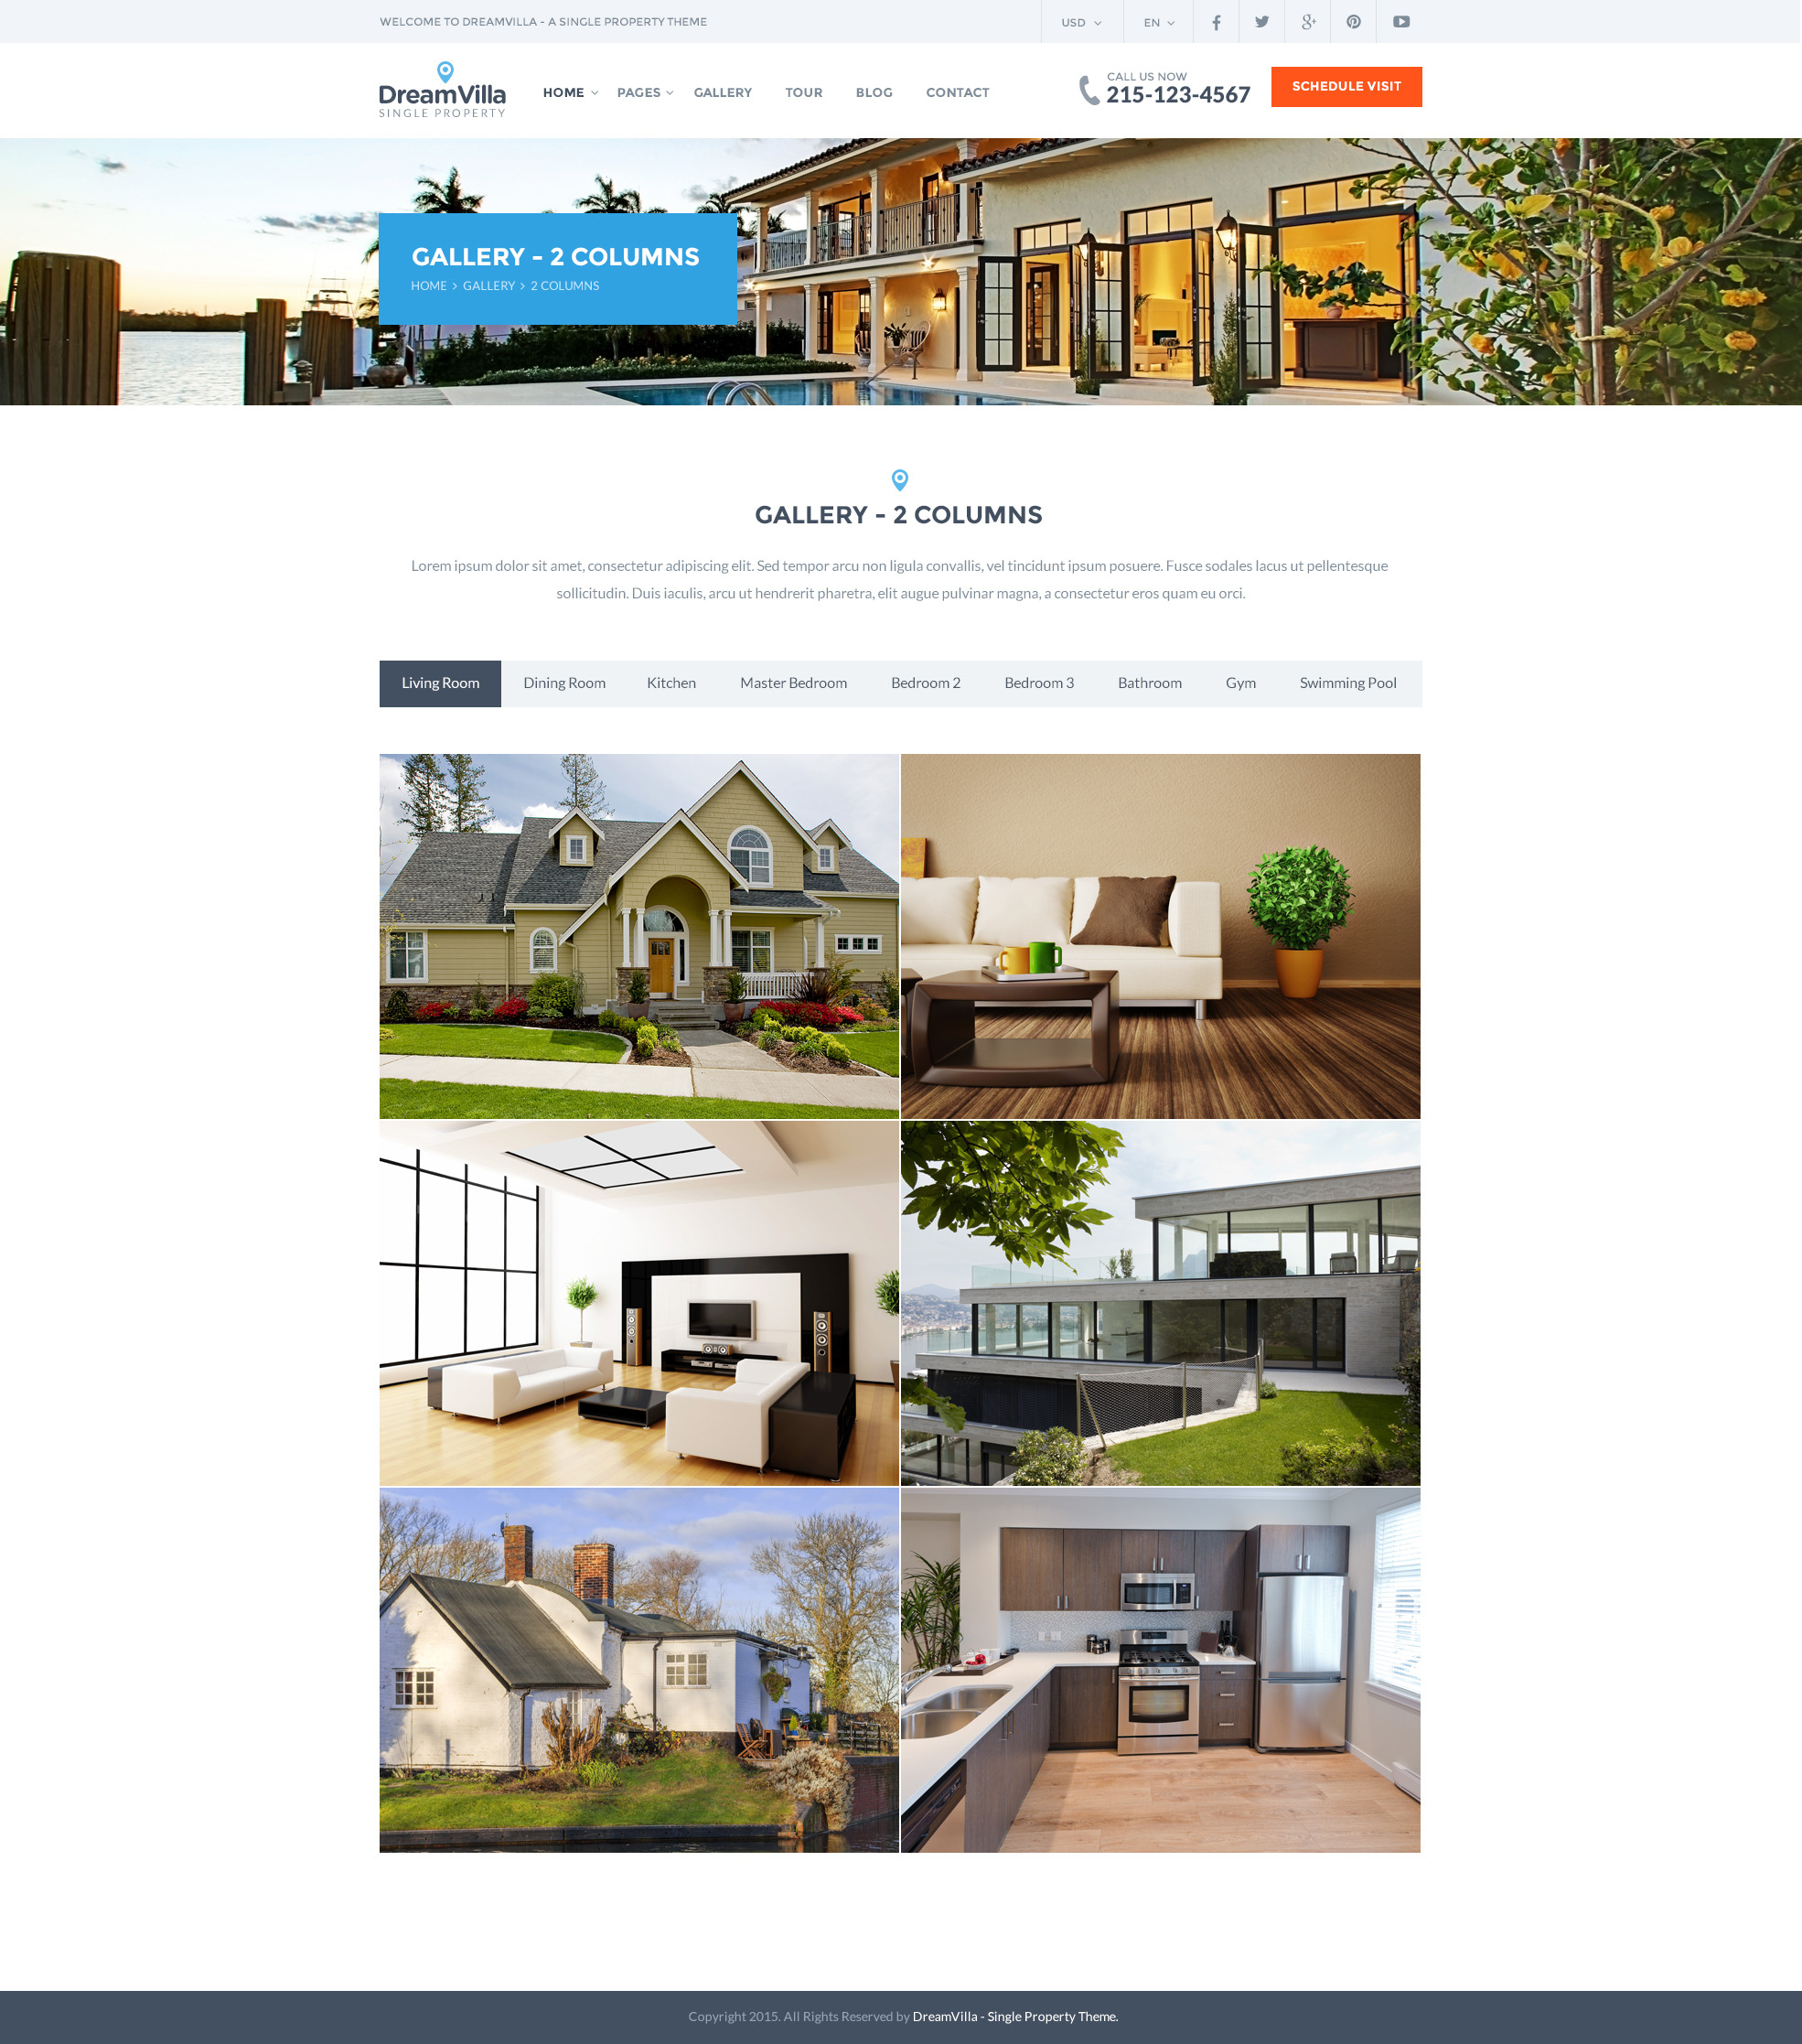 DreamVilla - Single Property HTML Template by fortunecreations ... on cheap house designs, 2016 house designs, single story house designs, traditional house designs, unique brick house designs, 2017 house designs, adobe house designs, indian house designs, habitat for humanity house designs, bird house designs, best house designs, smoke house designs, low country house designs, off the grid house designs, single level house designs, eco house designs, simple house designs, 2014 house designs, log house designs, wheel house designs,